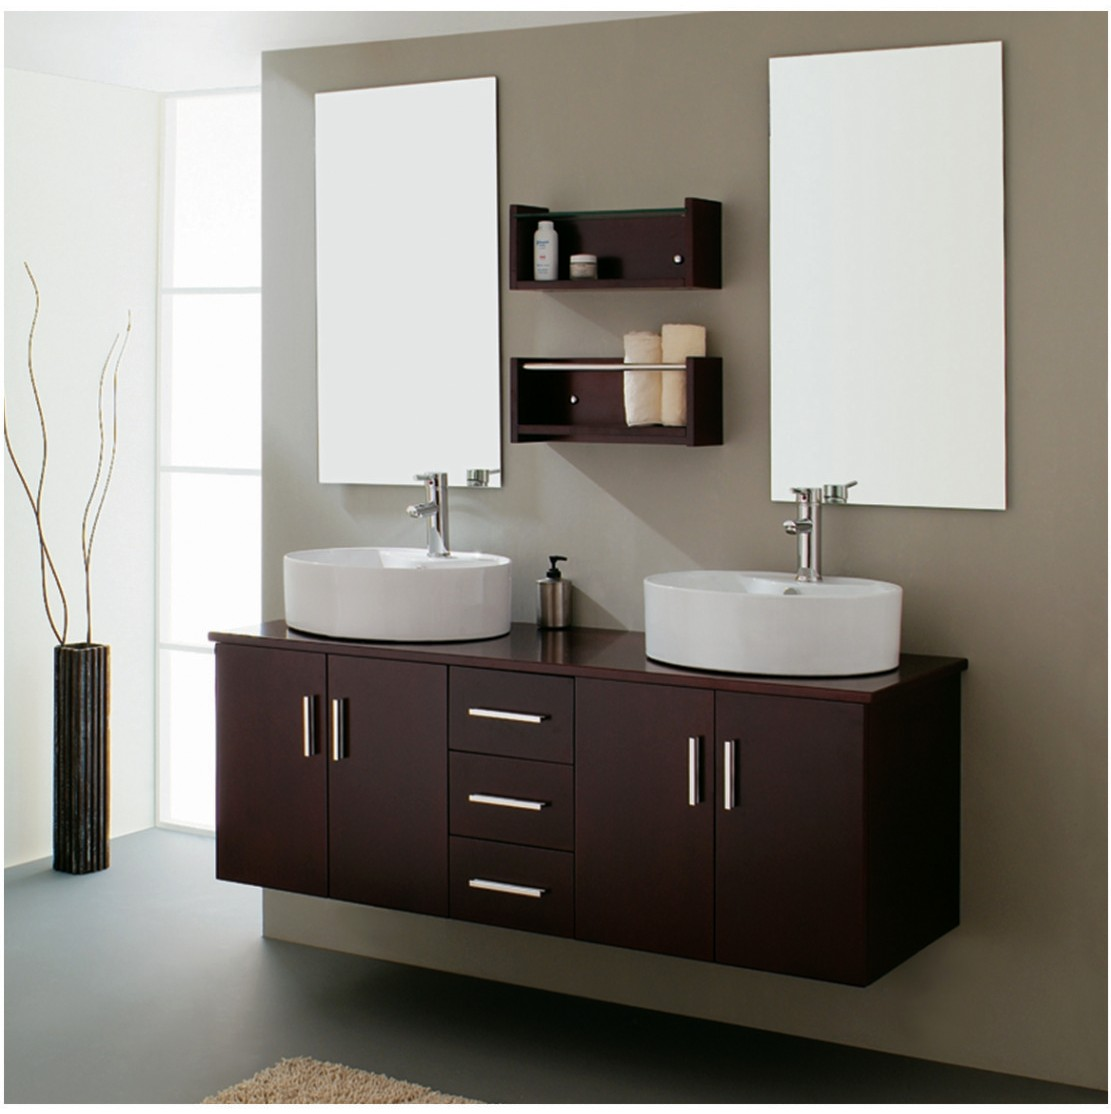 Modern bathroom double sink home decorating ideas for Bathroom designs contemporary